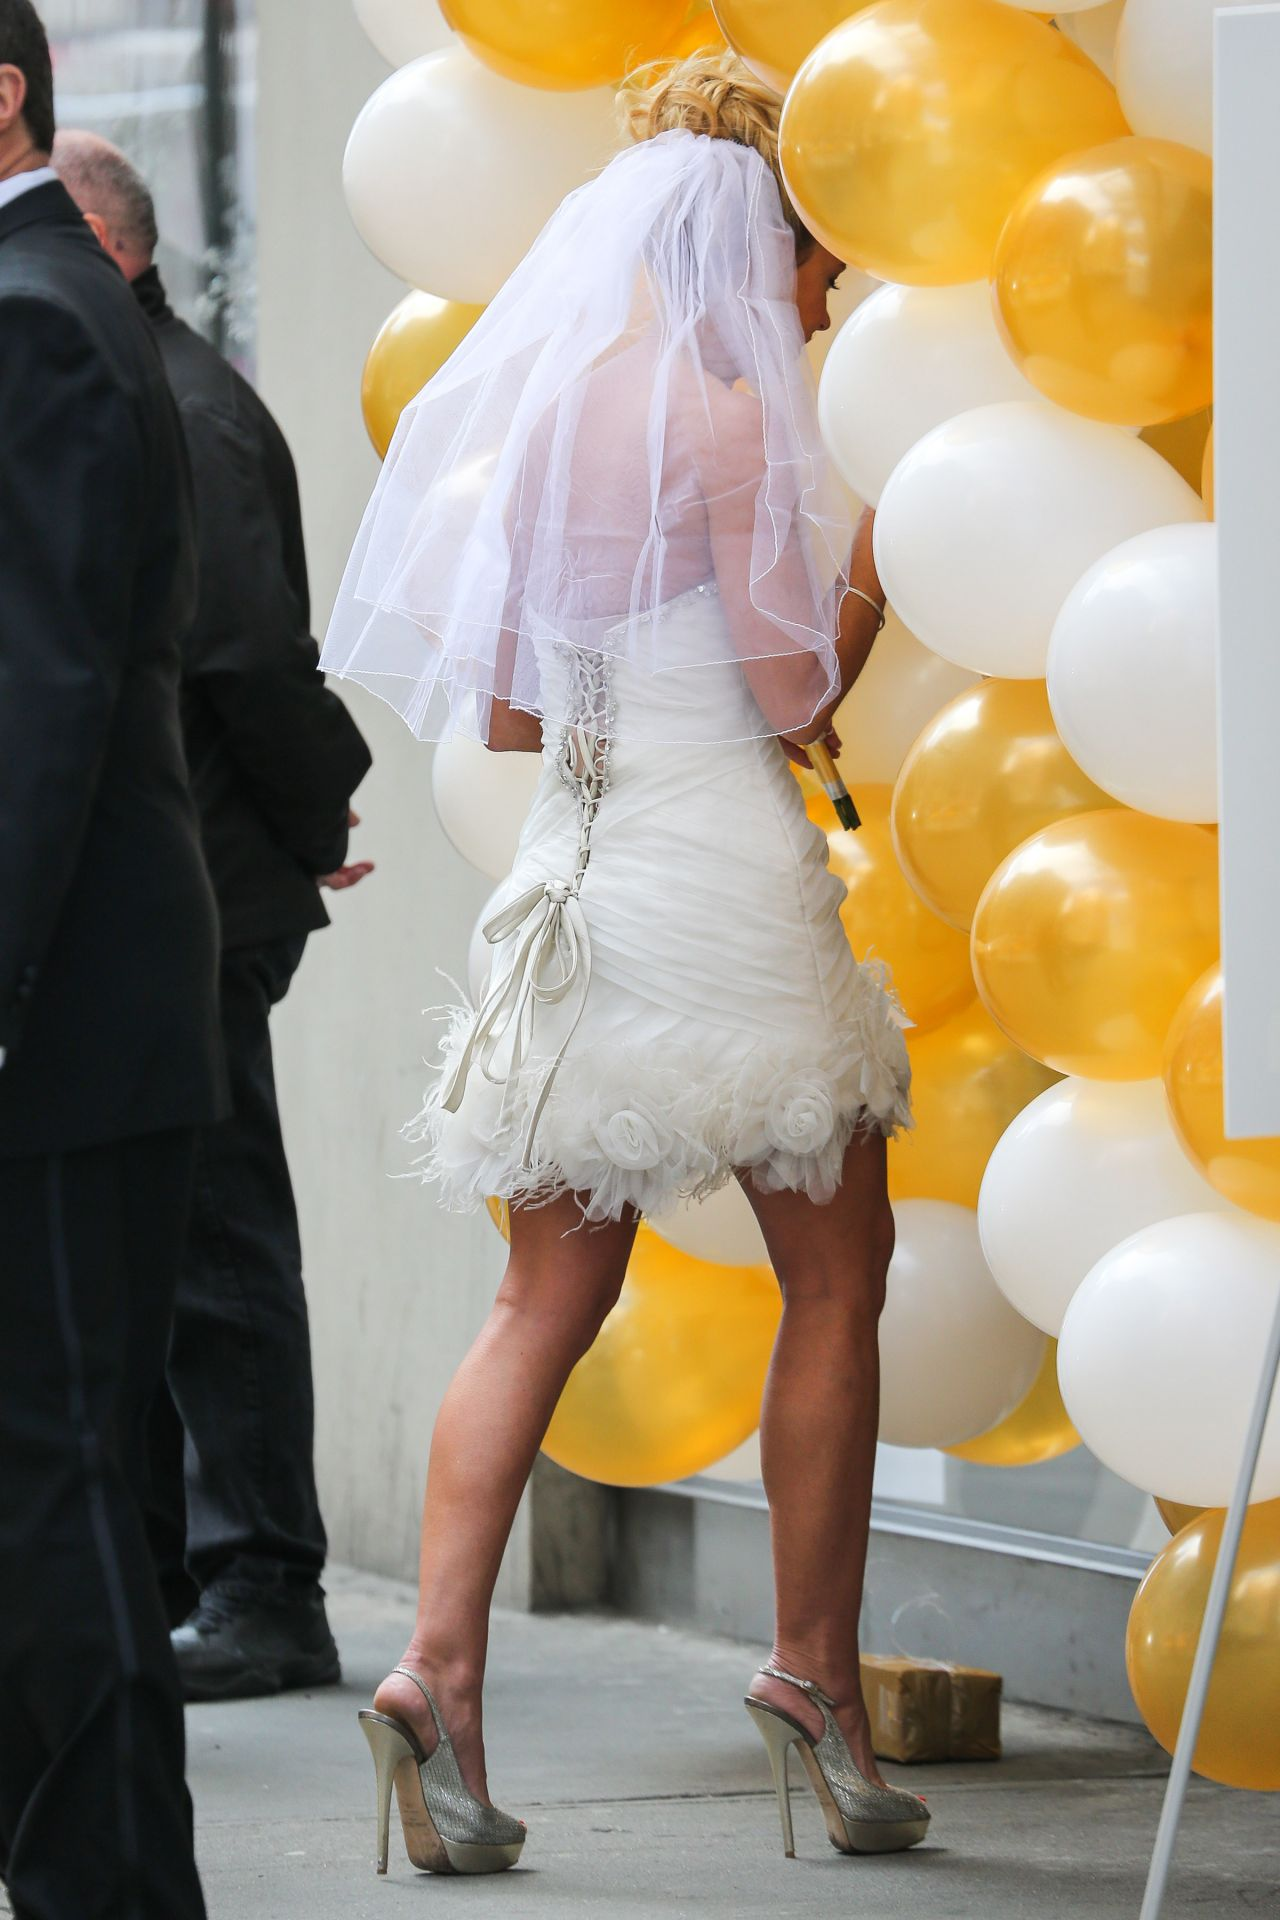 Kate Gosselin Wearing Short Wedding Dress And High Heels